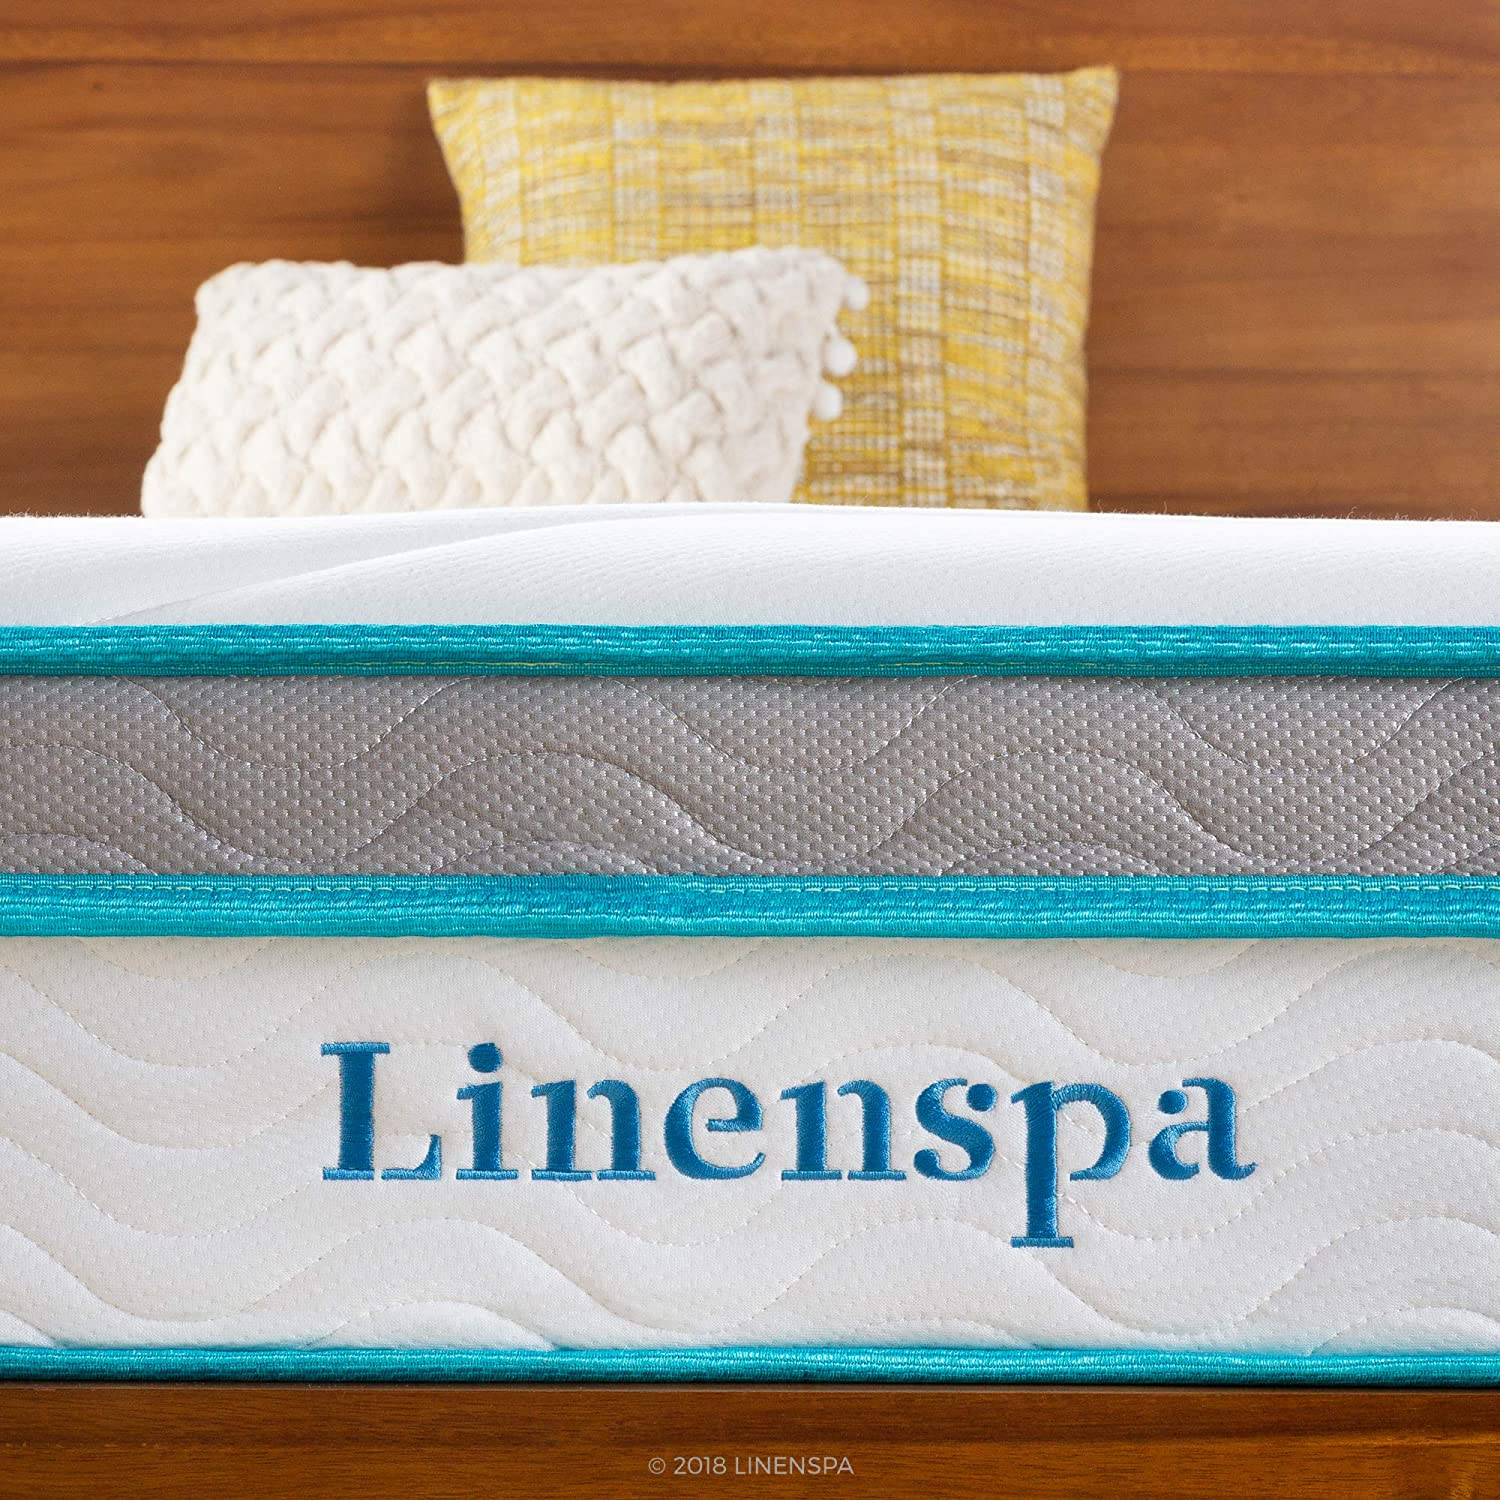 Linenspa 12 Inch Memory Hybrid Plush-Individually Encased Coils-Edge Support-Quilted Foam Cover Mattress, Full, White: Furniture & Decor